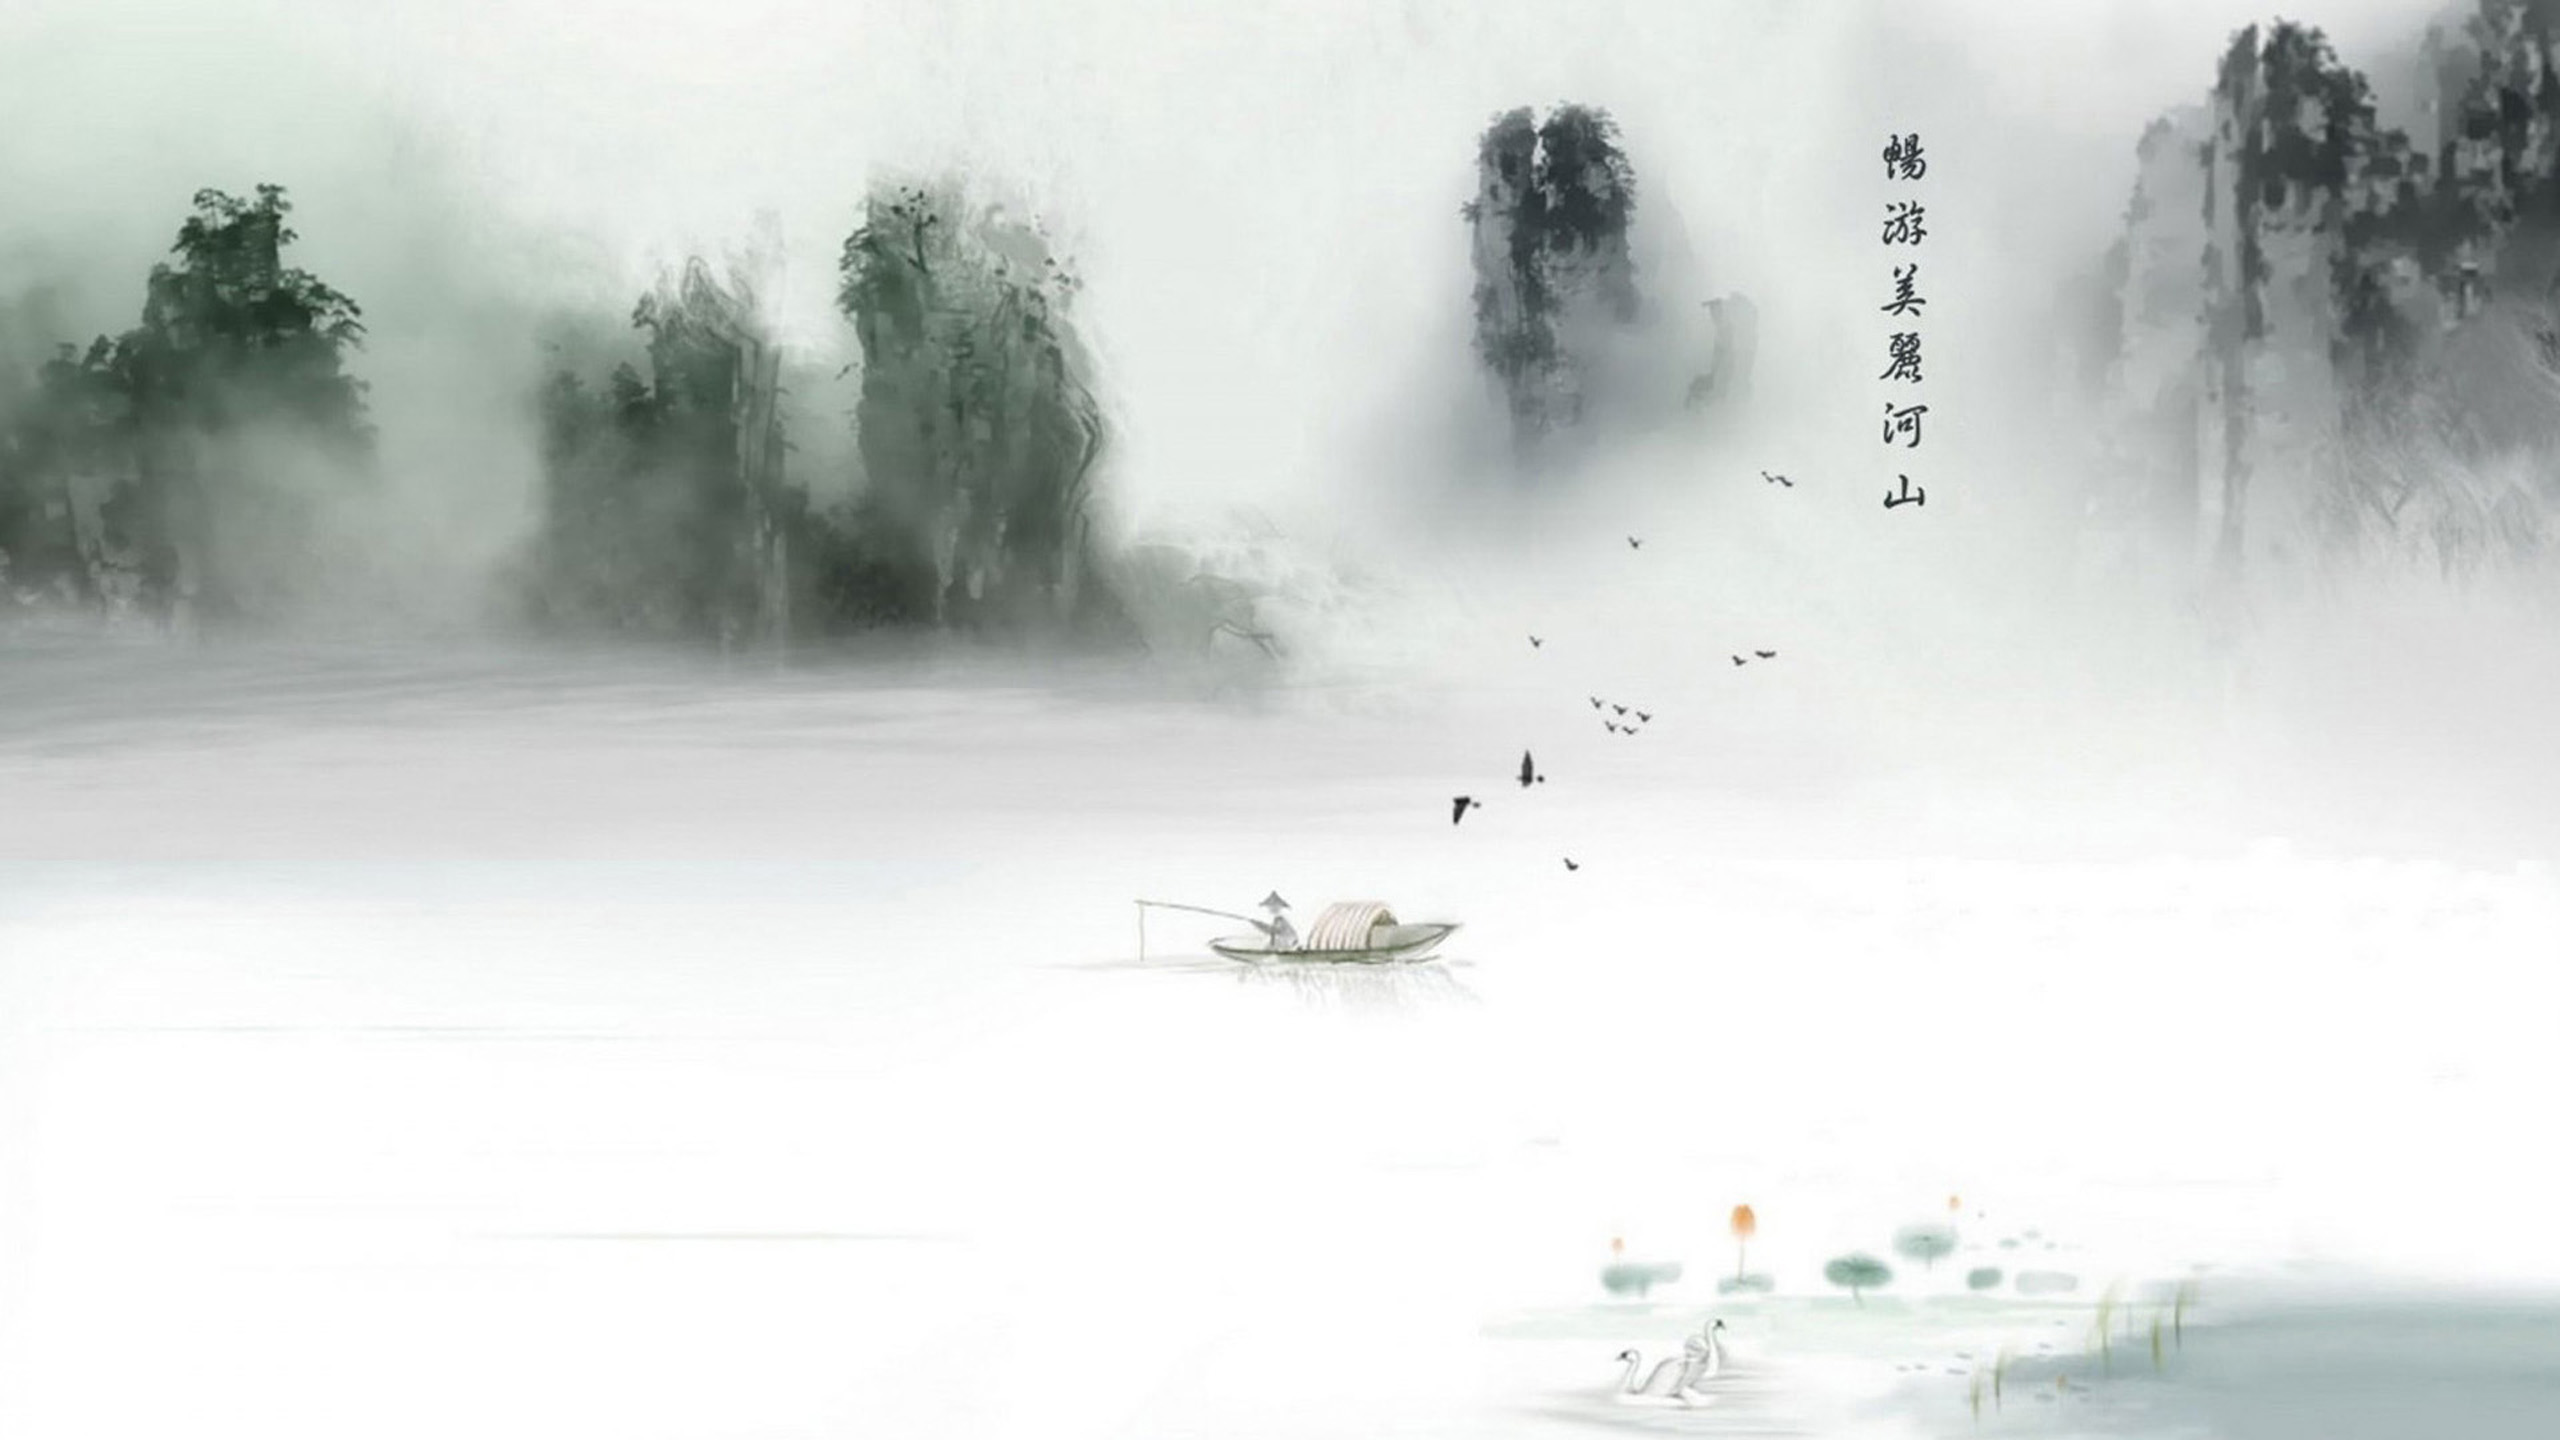 chinese hd background desktop - photo #16